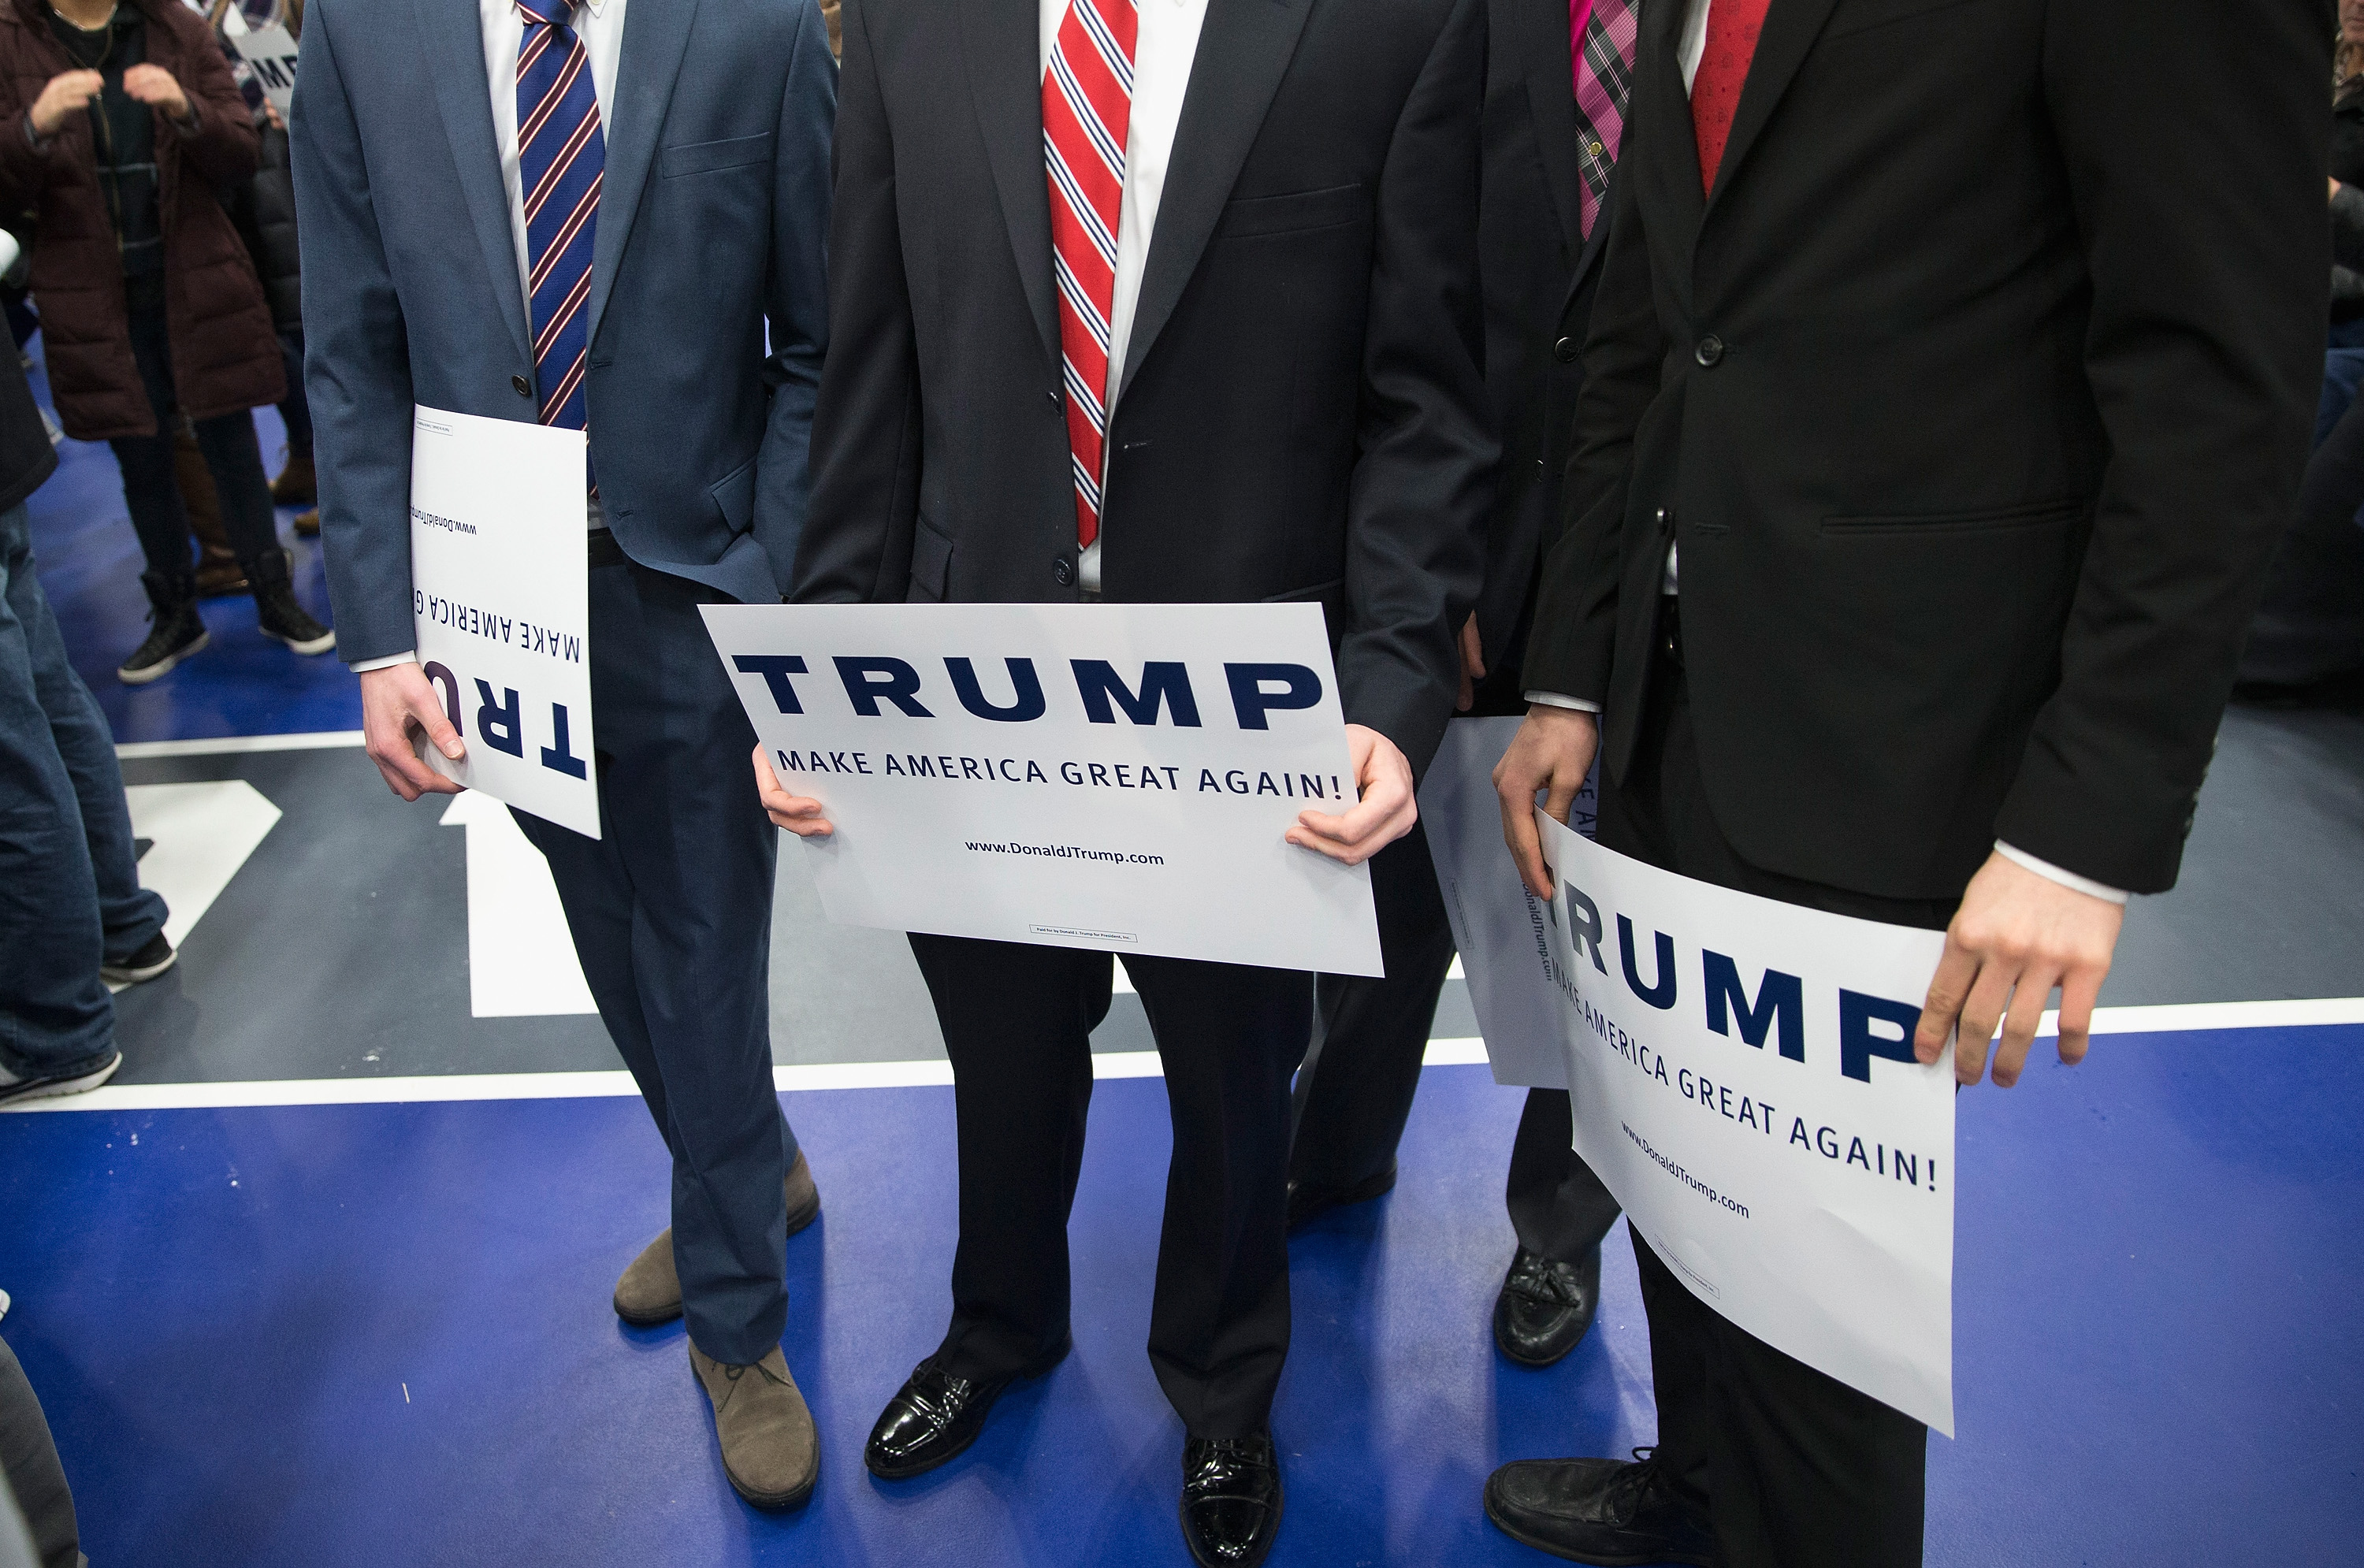 Men hold signs while waiting for Republican presidential candidate Donald Trump to arrive for a rally at Macomb Community College in Warren, Mich., on March 4, 2016.